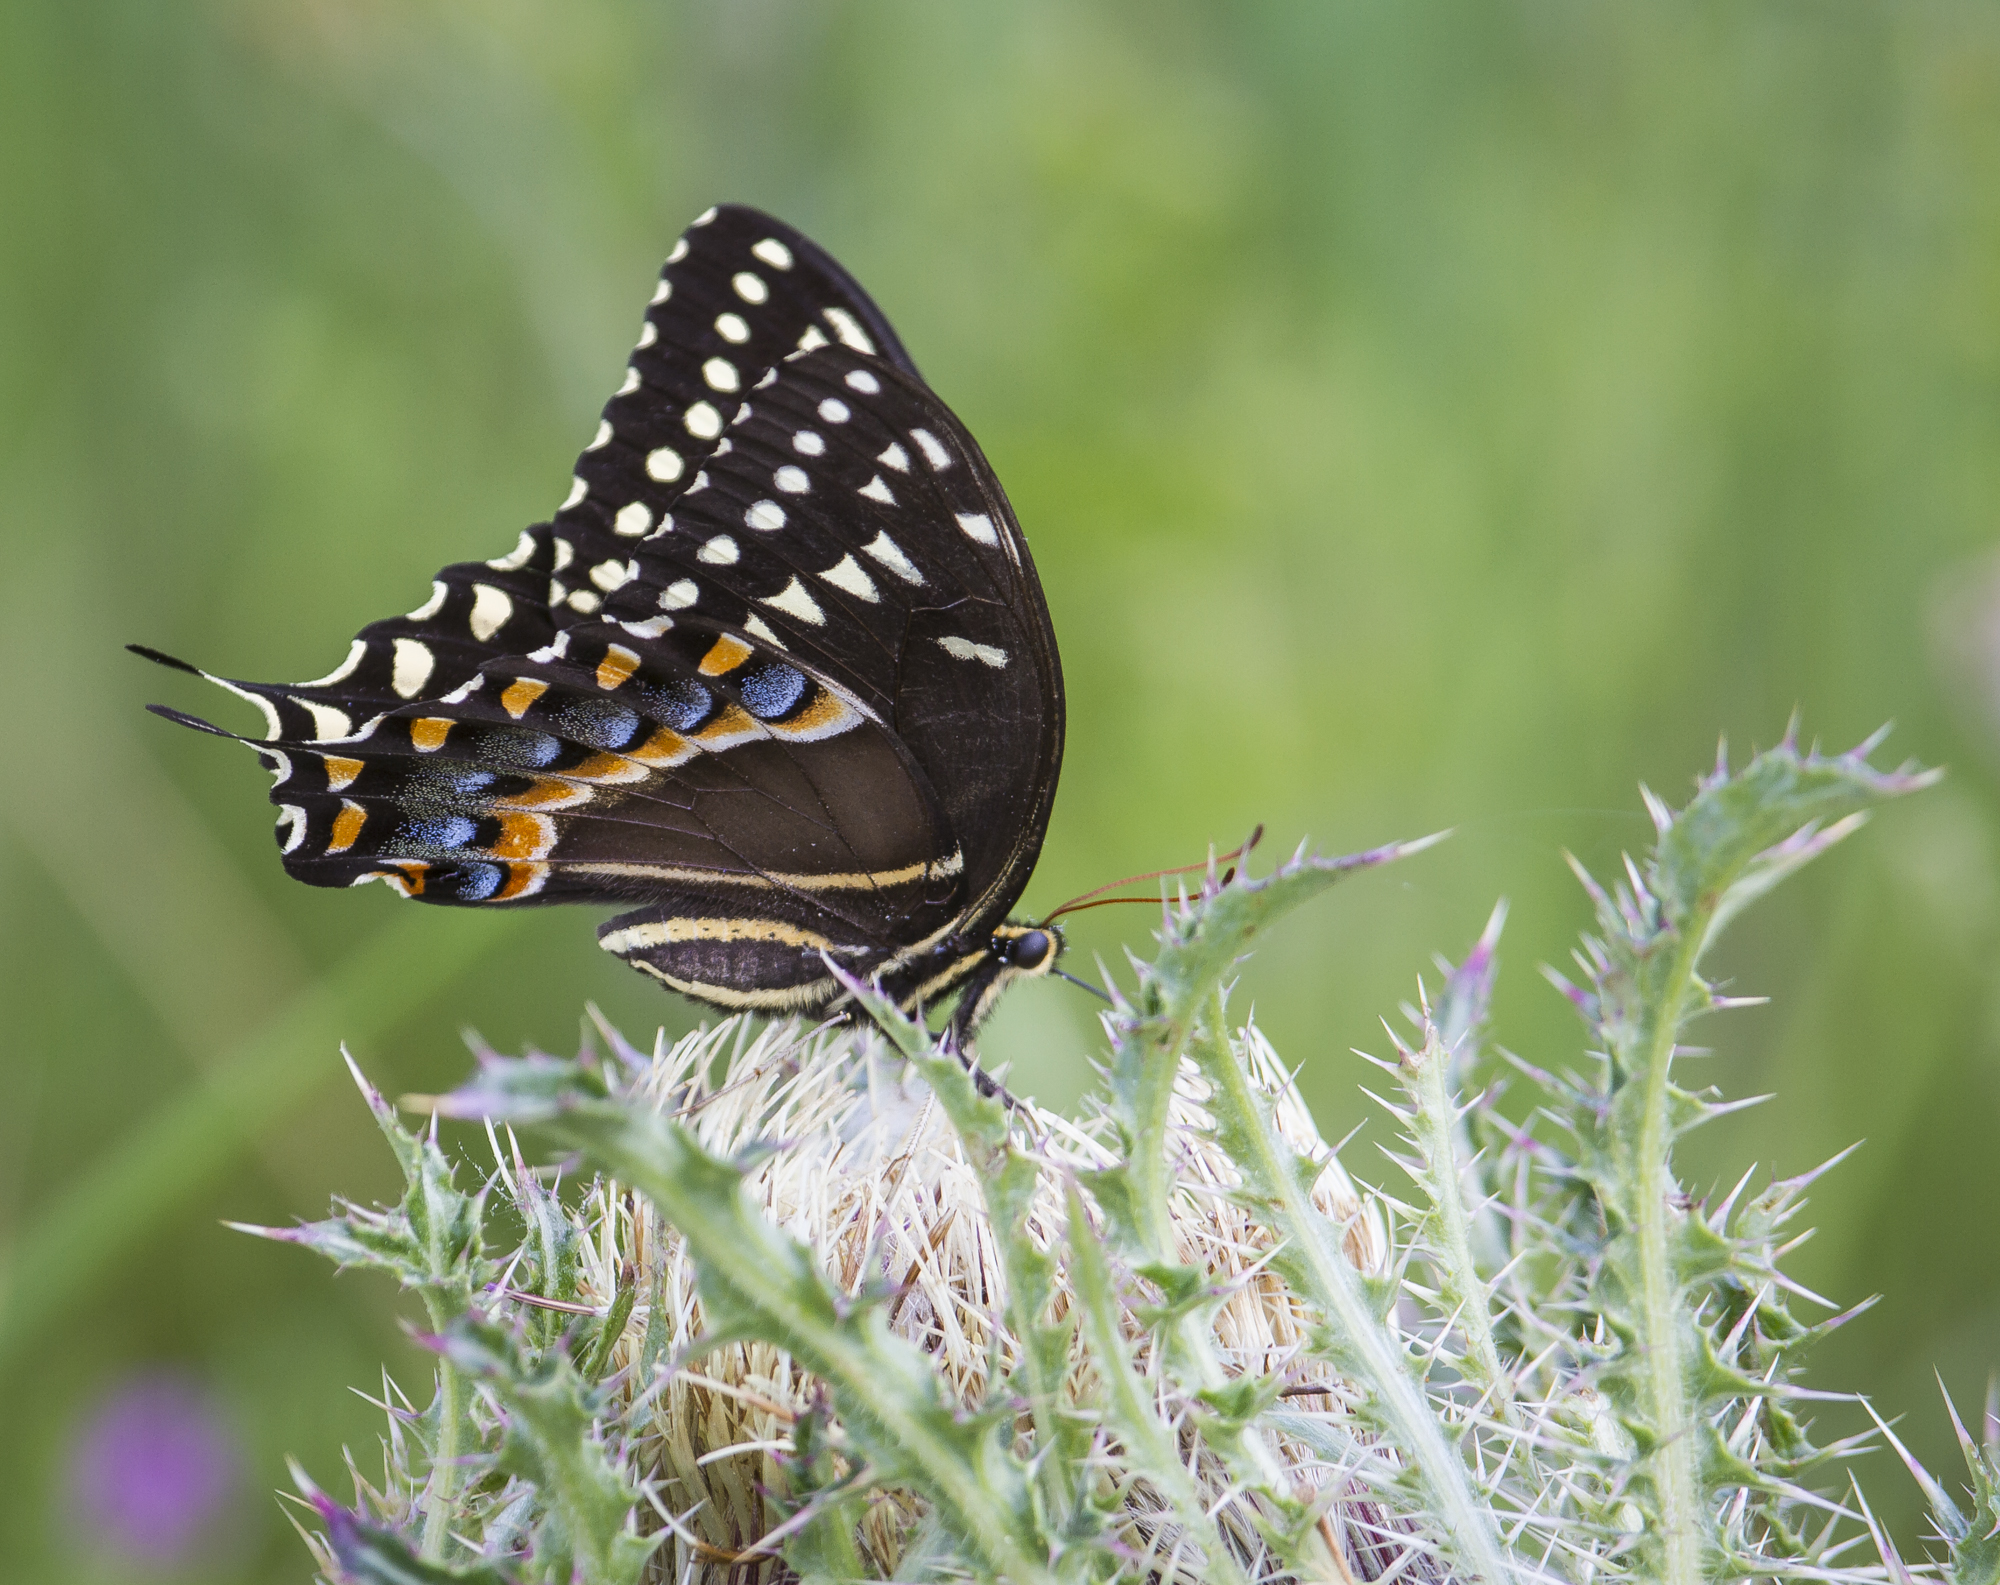 palamedes swallowtail on thistle